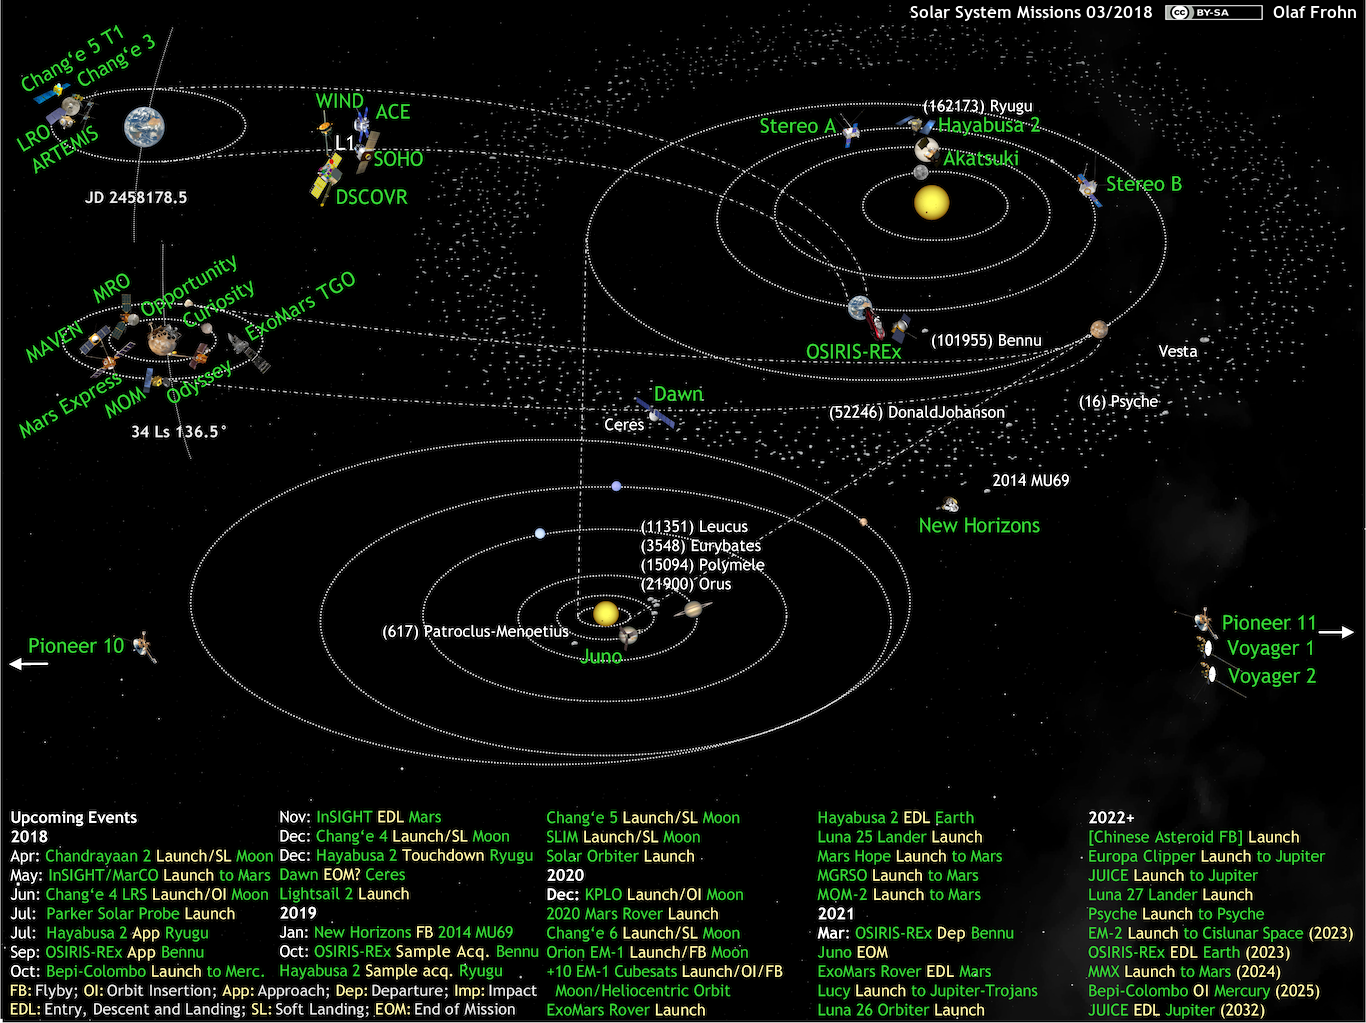 What's Up in the Solar System diagram by Olaf Frohn (updated